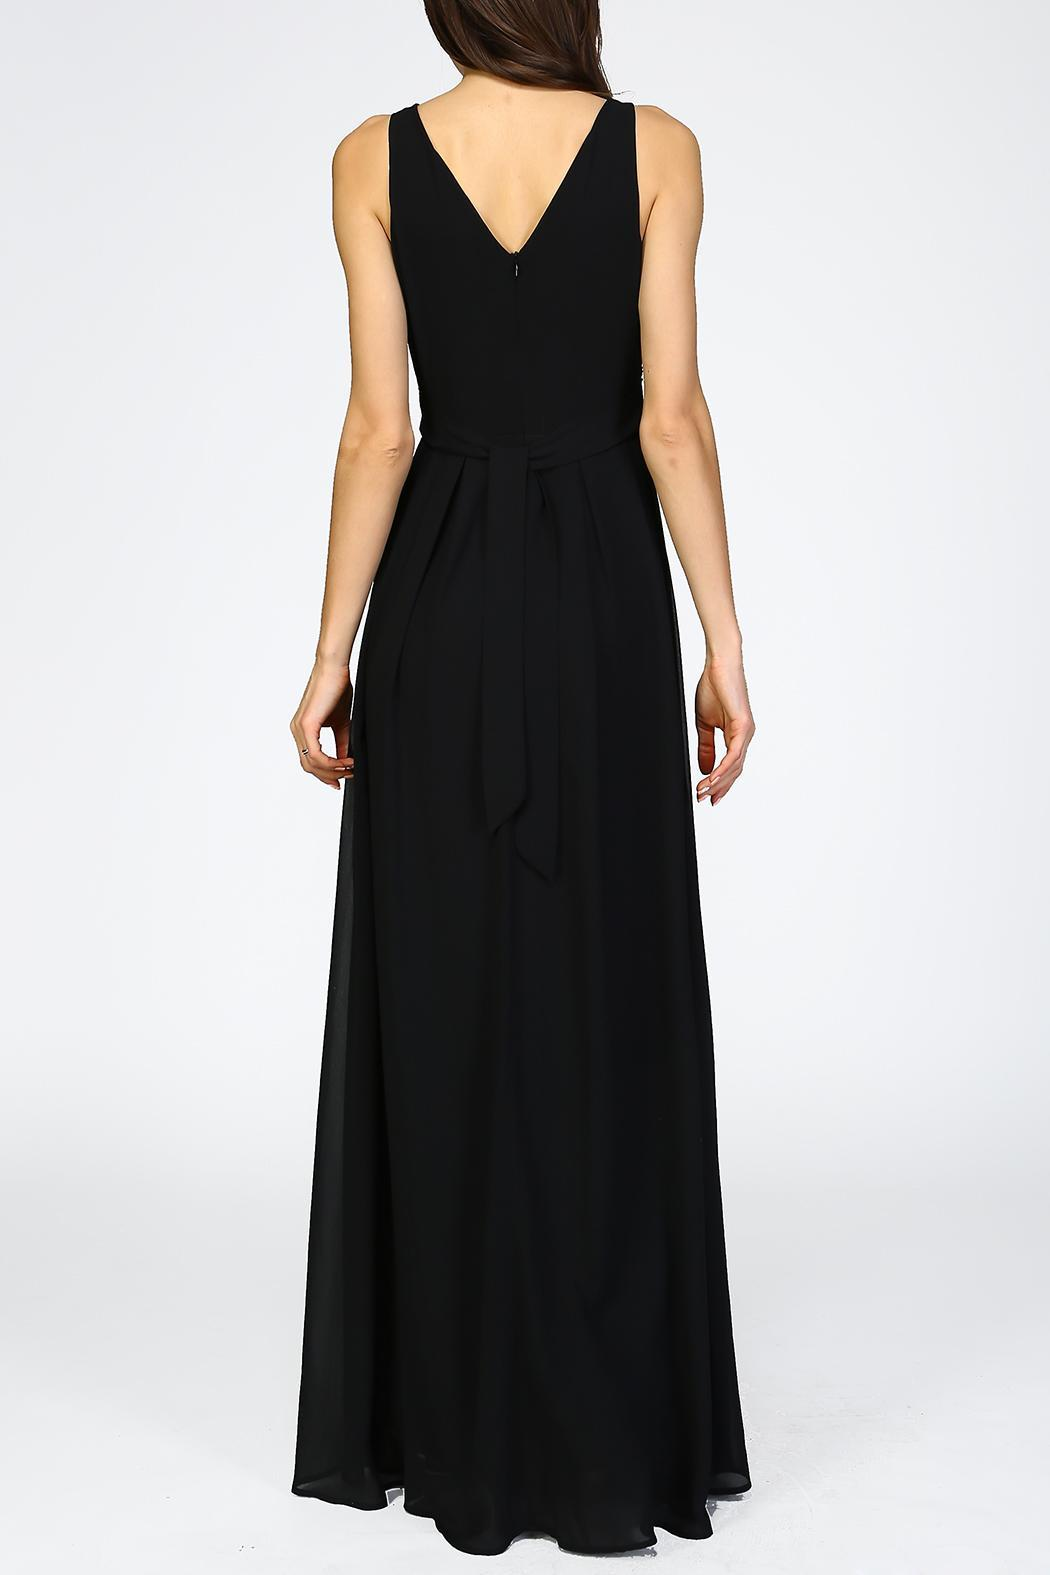 Minuet Black Beaded Gown from Florida by i Tesori — Shoptiques